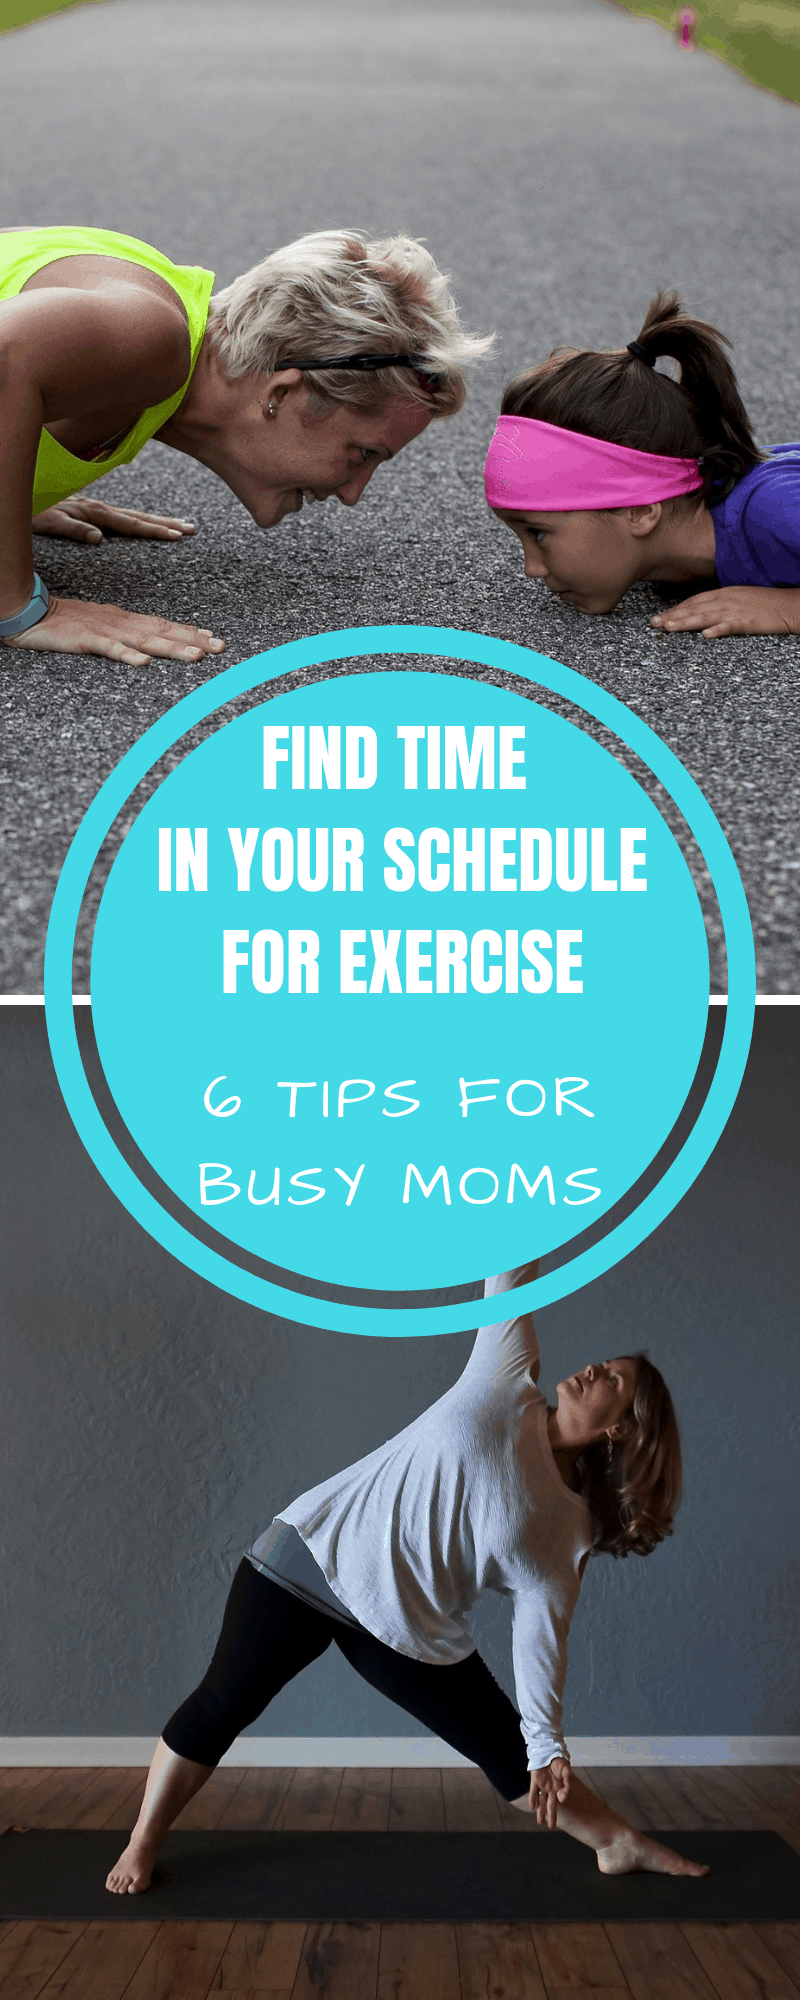 Find Time in Your Schedule for Exercise